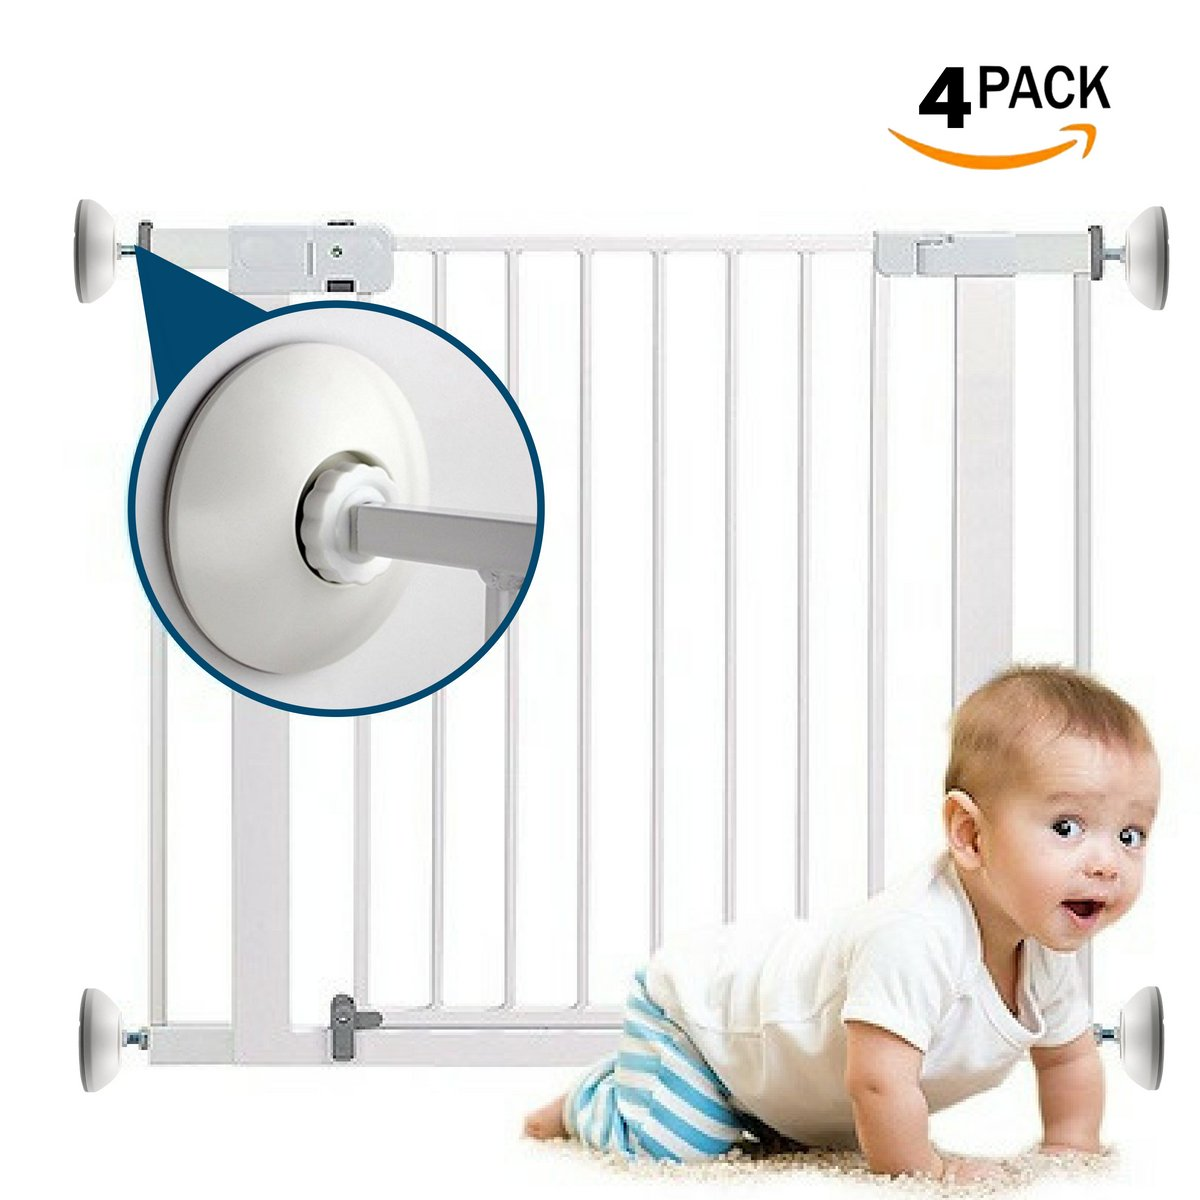 Baby GATE Wall Cups (4 Pack) Wall Protectors for Baby Safety Gates | Prevent Paint Damage, Bumper Pads are Universal for Doorway, Stairs, Works with Dog Pet Child Kid Pressure Mounted Cups